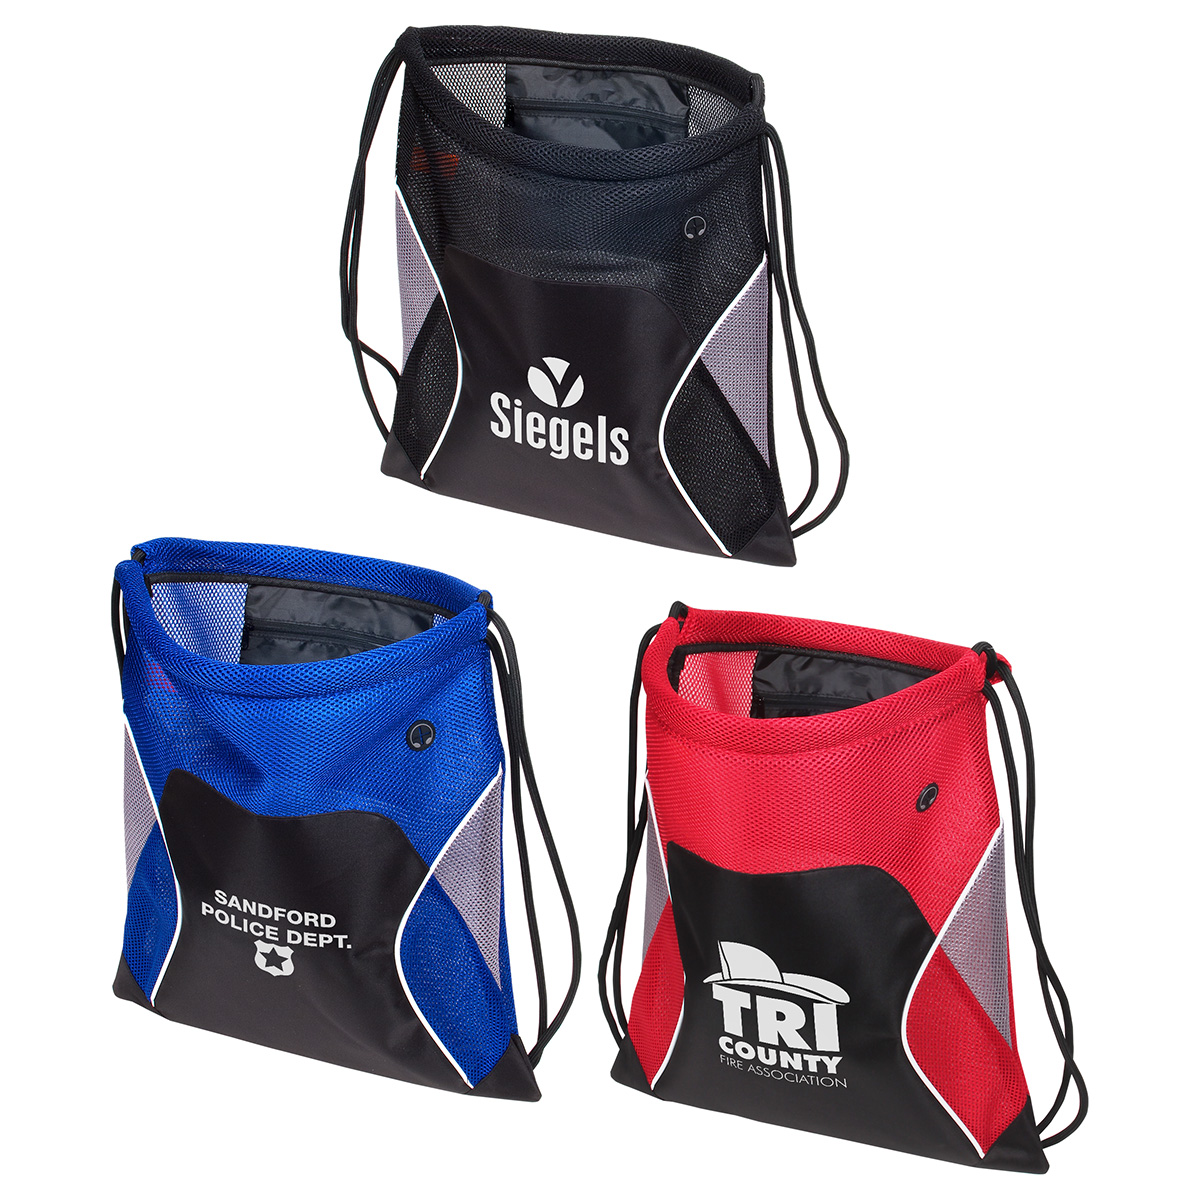 Jumbo Globetrotter Drawstring Bag, WBA-JG15 - 1 Colour Imprint